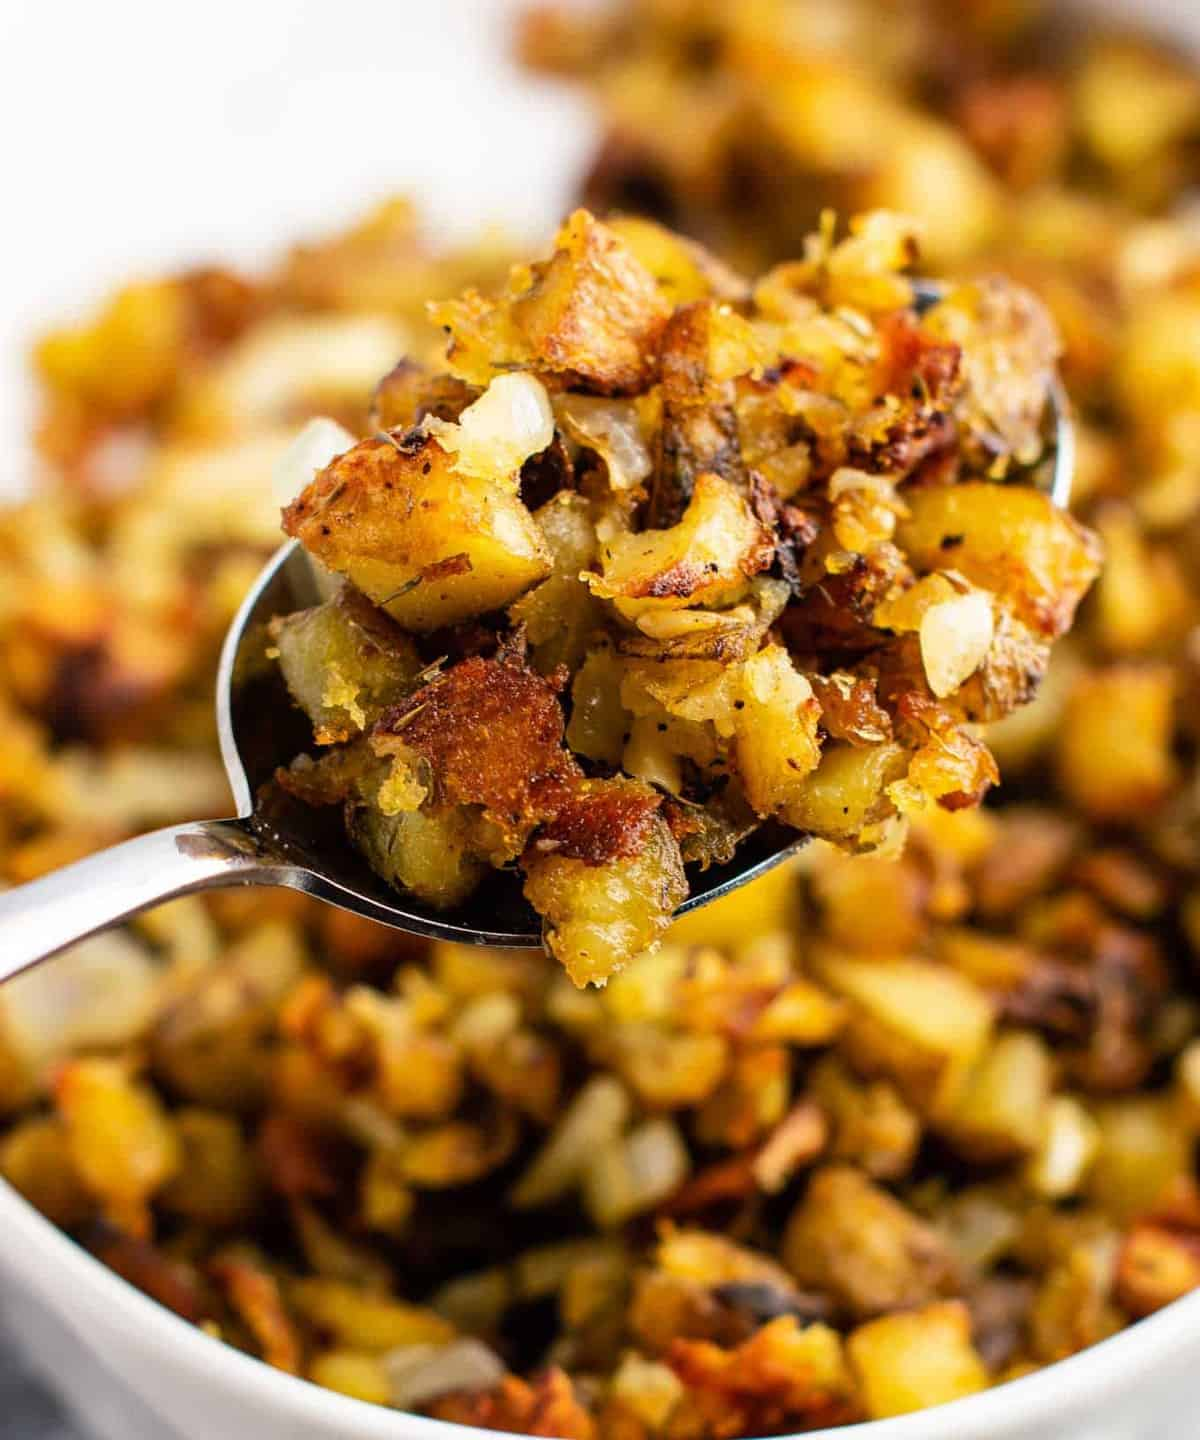 potato side dish with russet potatoes